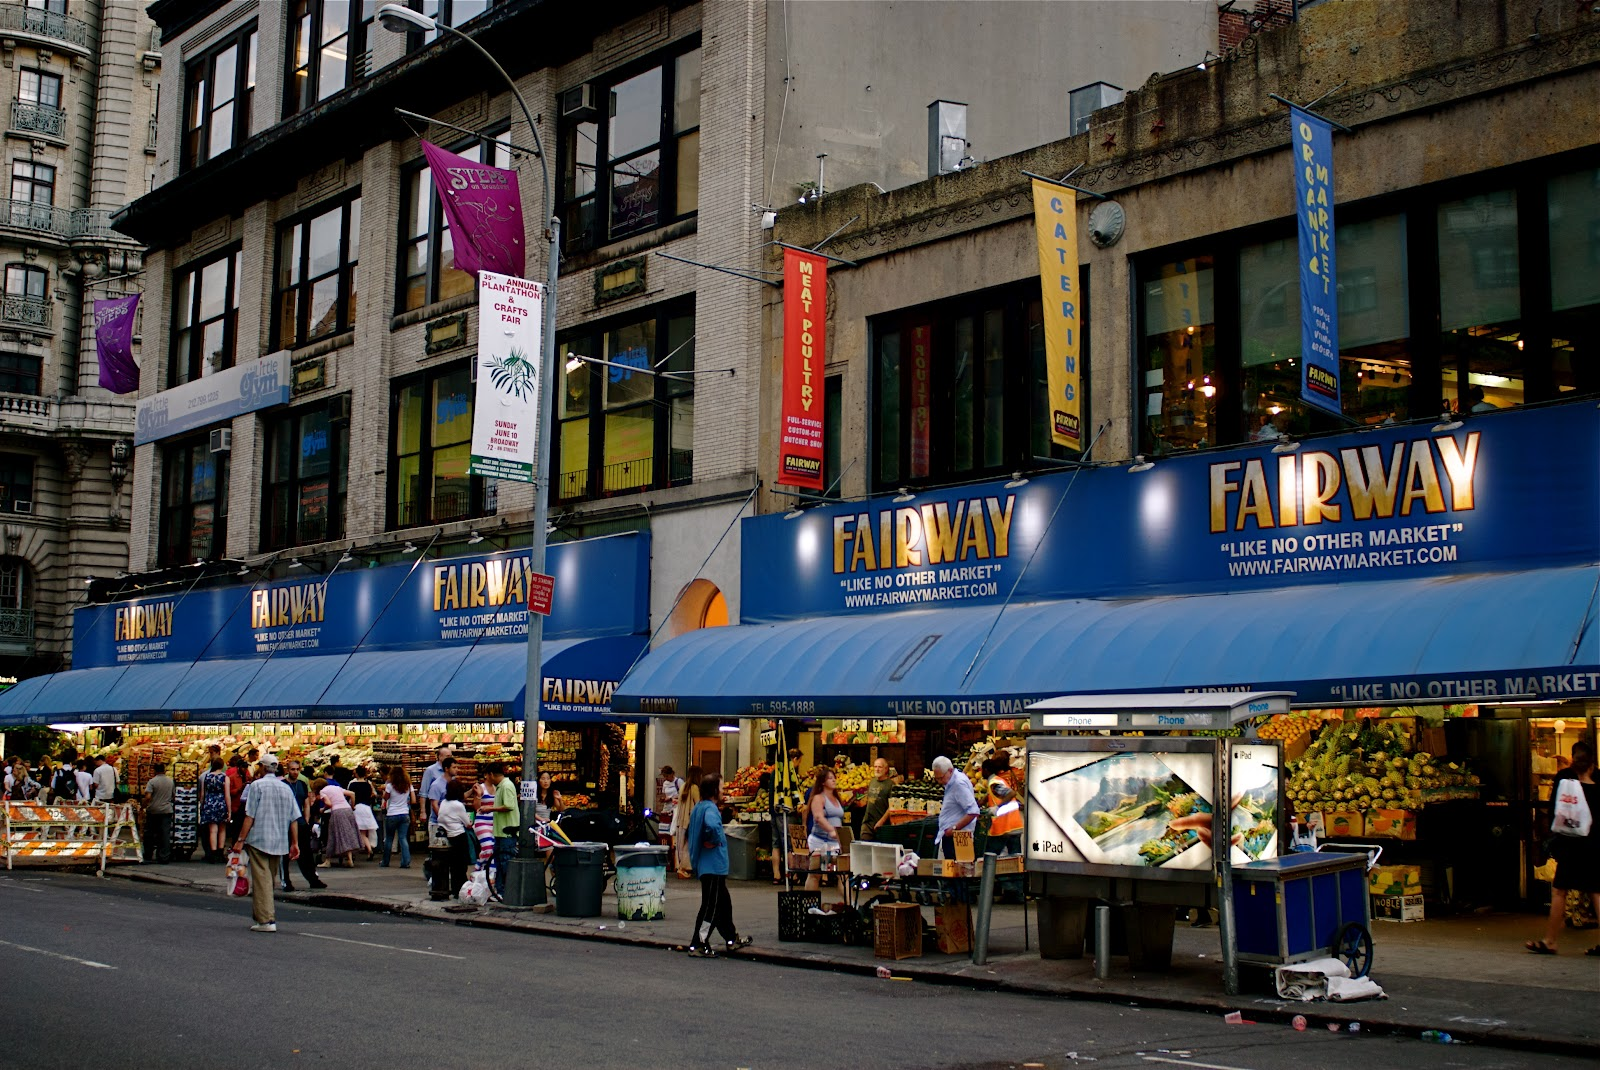 Fairway Shop Nyc Nyc Fairway Market Flagship Store On The Upper West